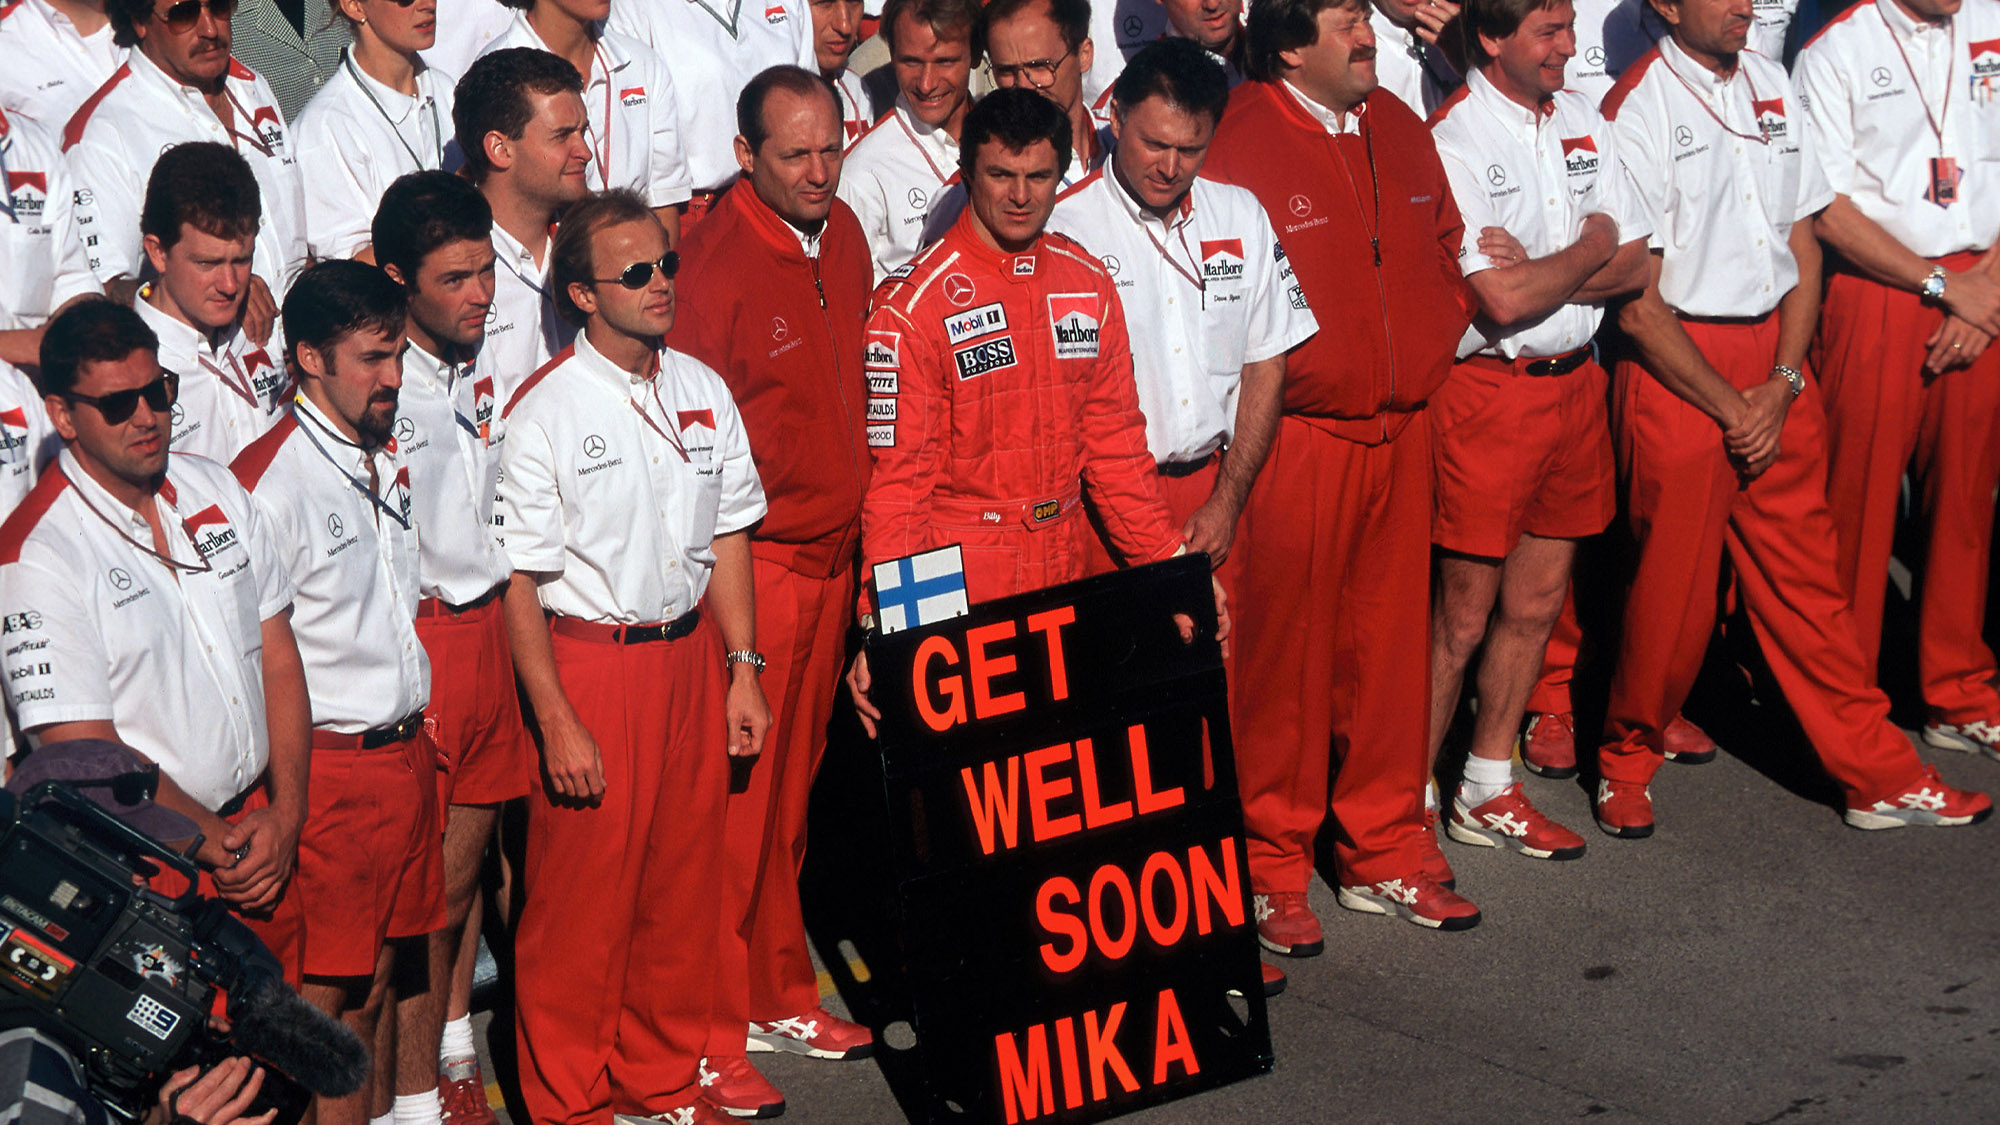 McLaren team holds a Get well soon Mika board after Hakkinen's crash in the build up to the 1995 Australian Grand Prix at Adelaide